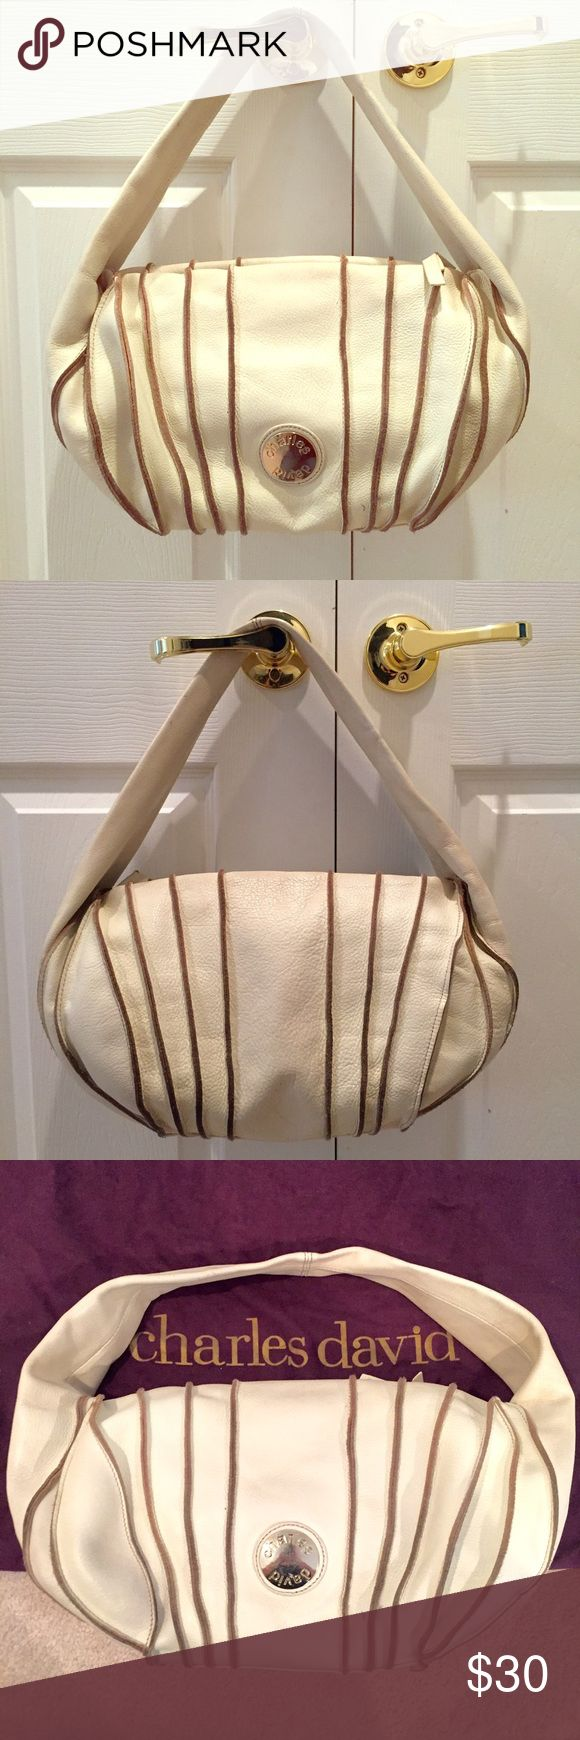 ⚡️SALE⚡️Charles David Genuine Leather Hobo This beautiful genuine leather off white Charles David handbag has a soft beige lining inside and comes with a dust bag. Charles David Bags Hobos